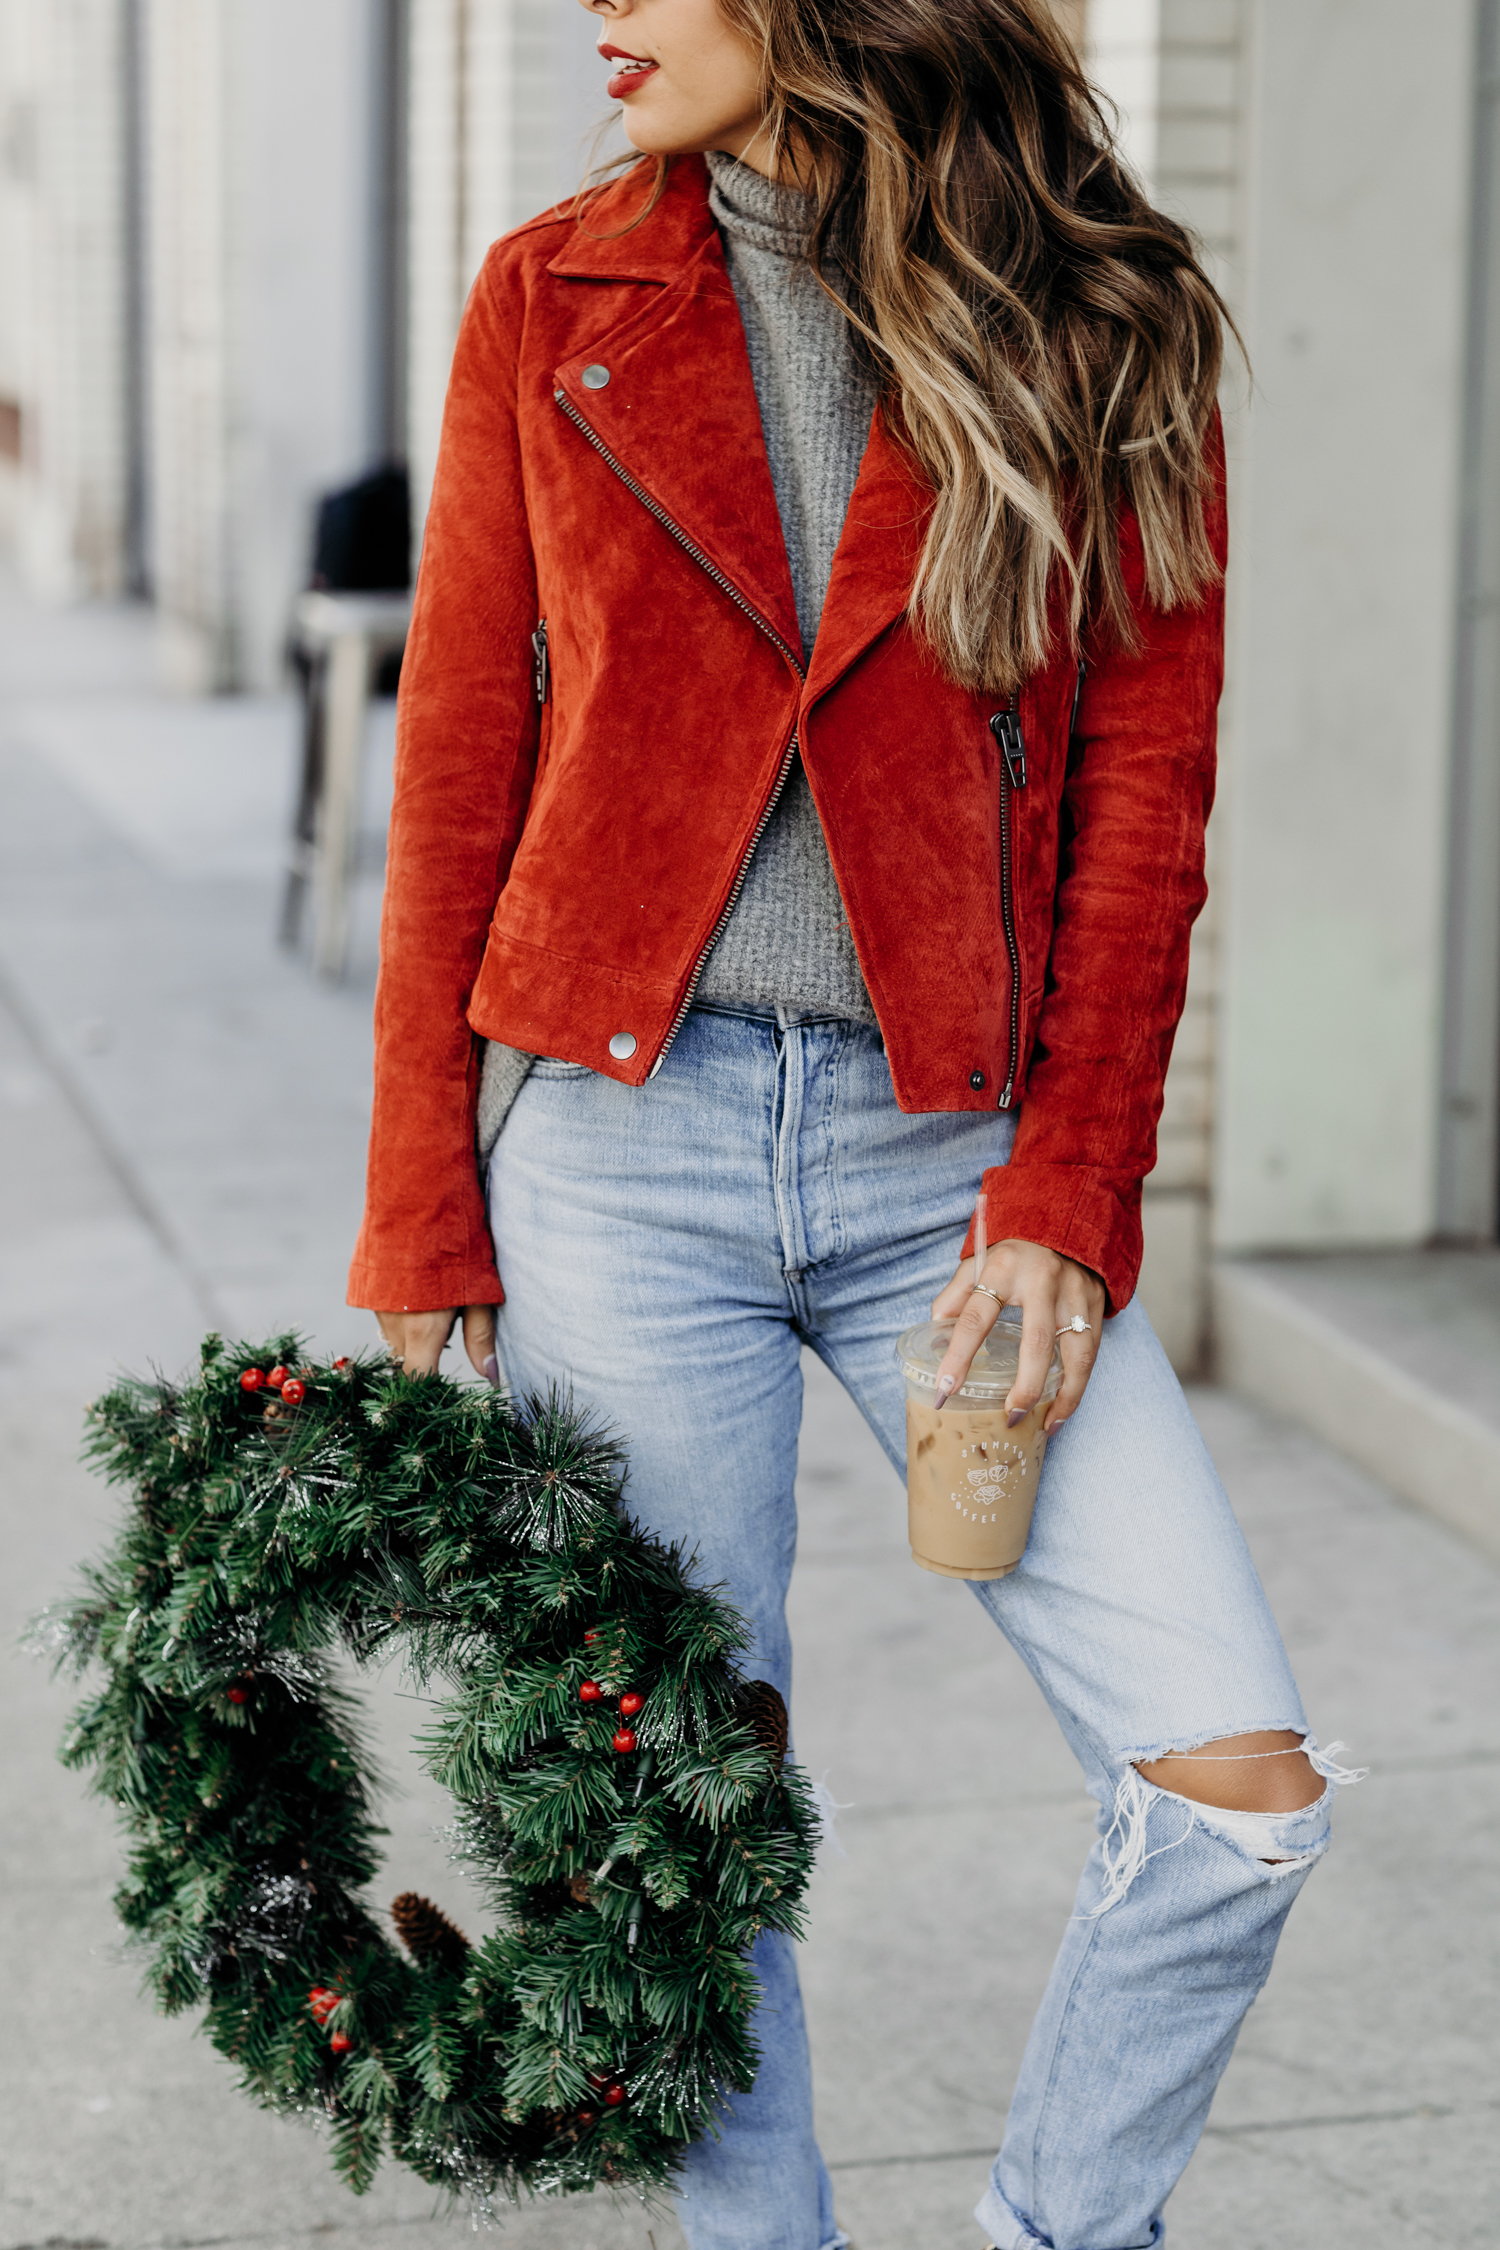 Los Angeles holiday vibes, BLANK NYC red jacket